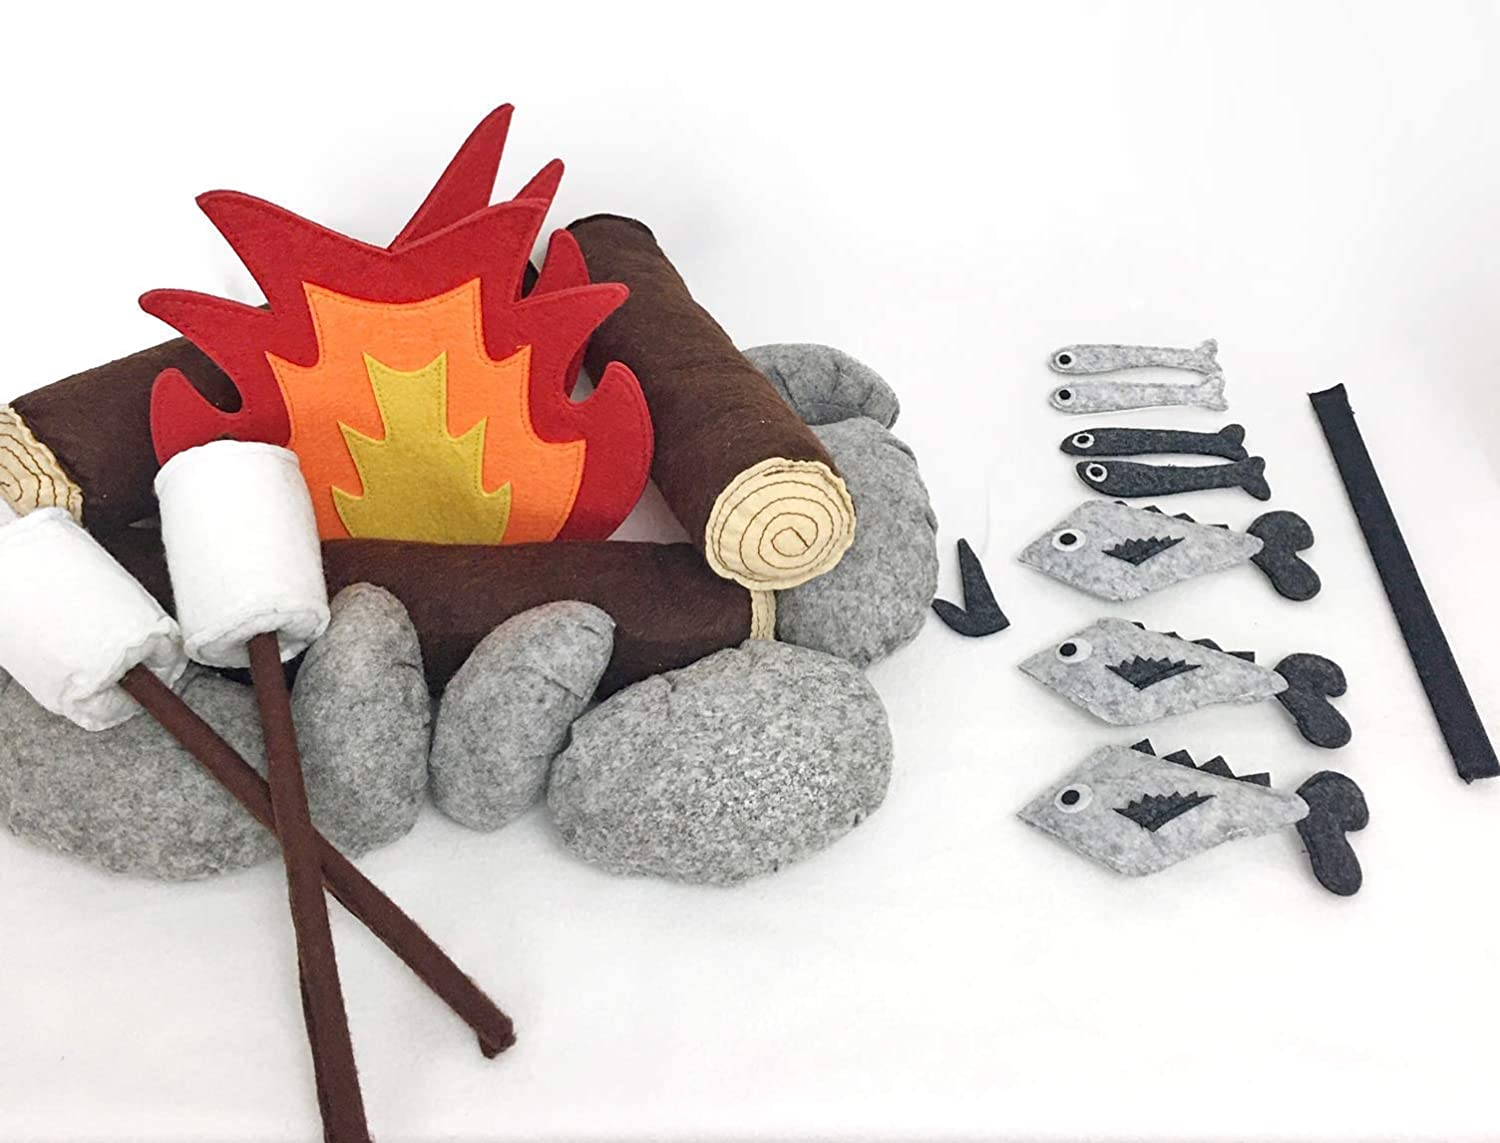 Includes 27-Piece Campfire Set /& Magnetic Fishing Set Premium Felt Material Indoor Camping Toy Bundle for Kids Domestic Objects